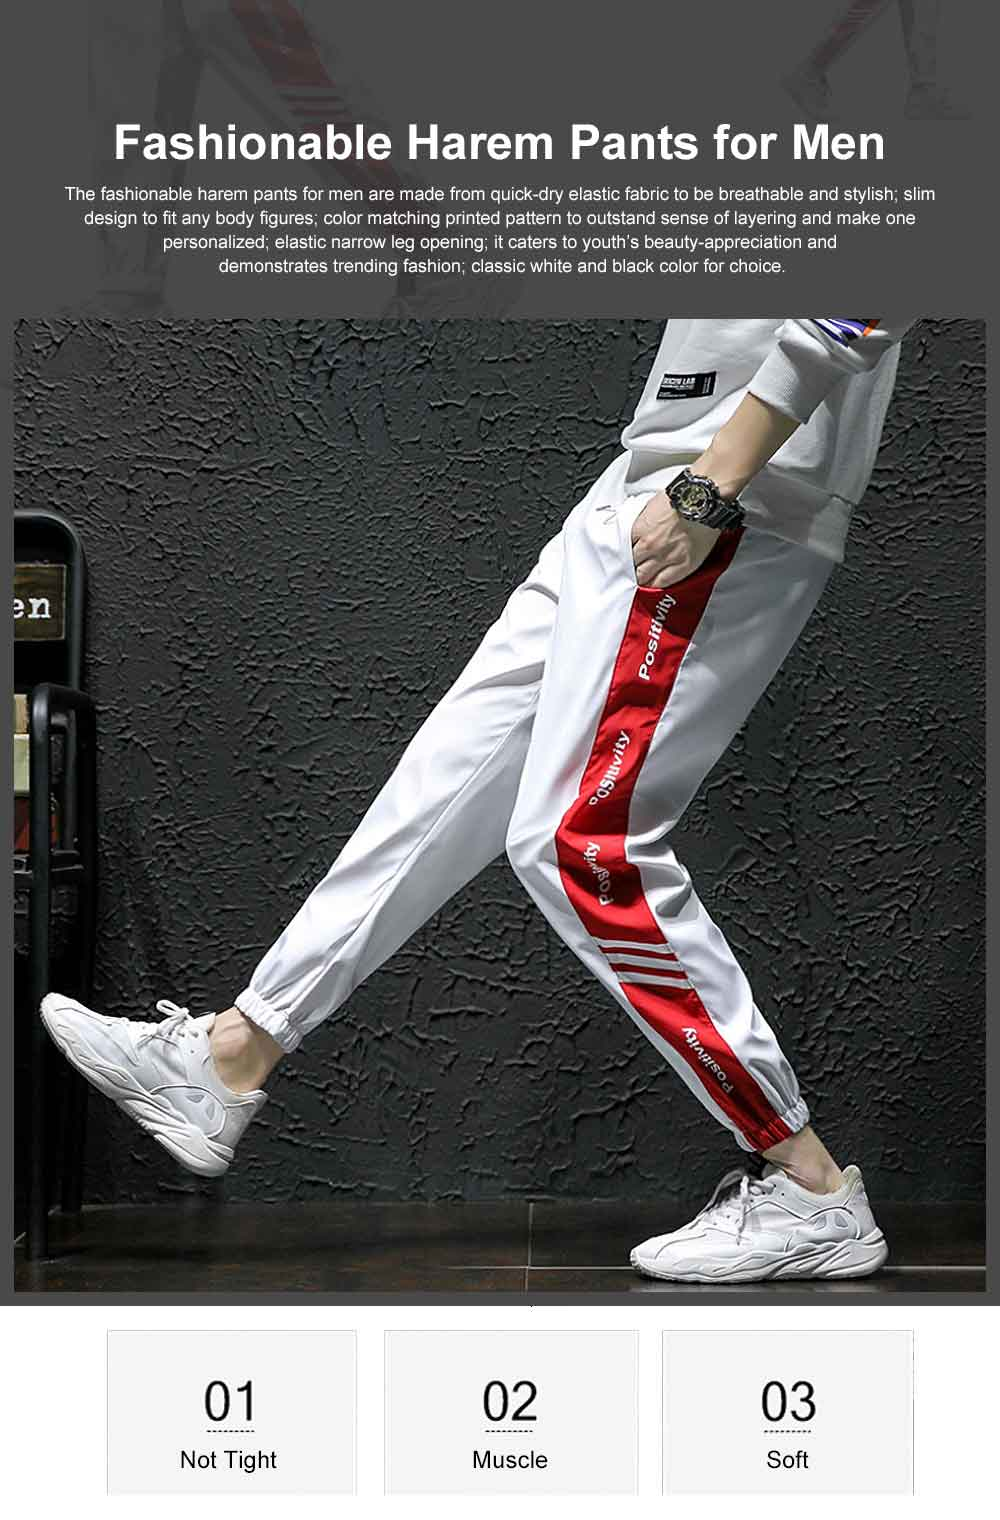 2019 Casual Harem Pants for Male Spring Summer, Mid-rised Slim-fit Pants for Man, Sports Slacks Men's Trousers 0